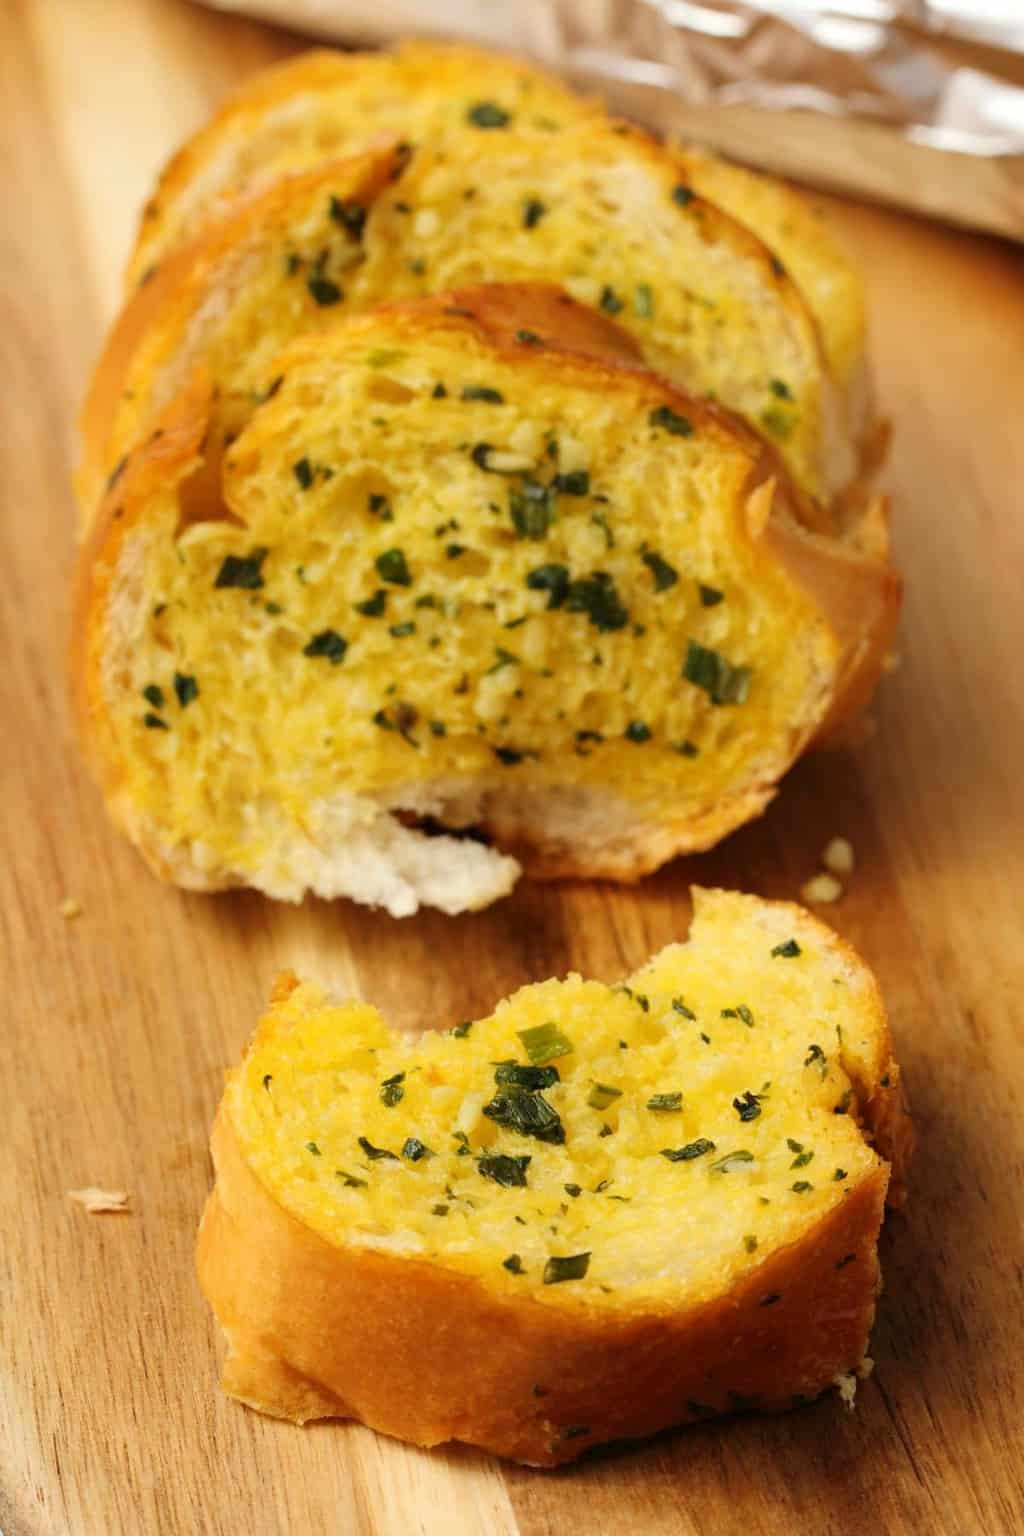 Vegan garlic bread on a wooden cutting board.